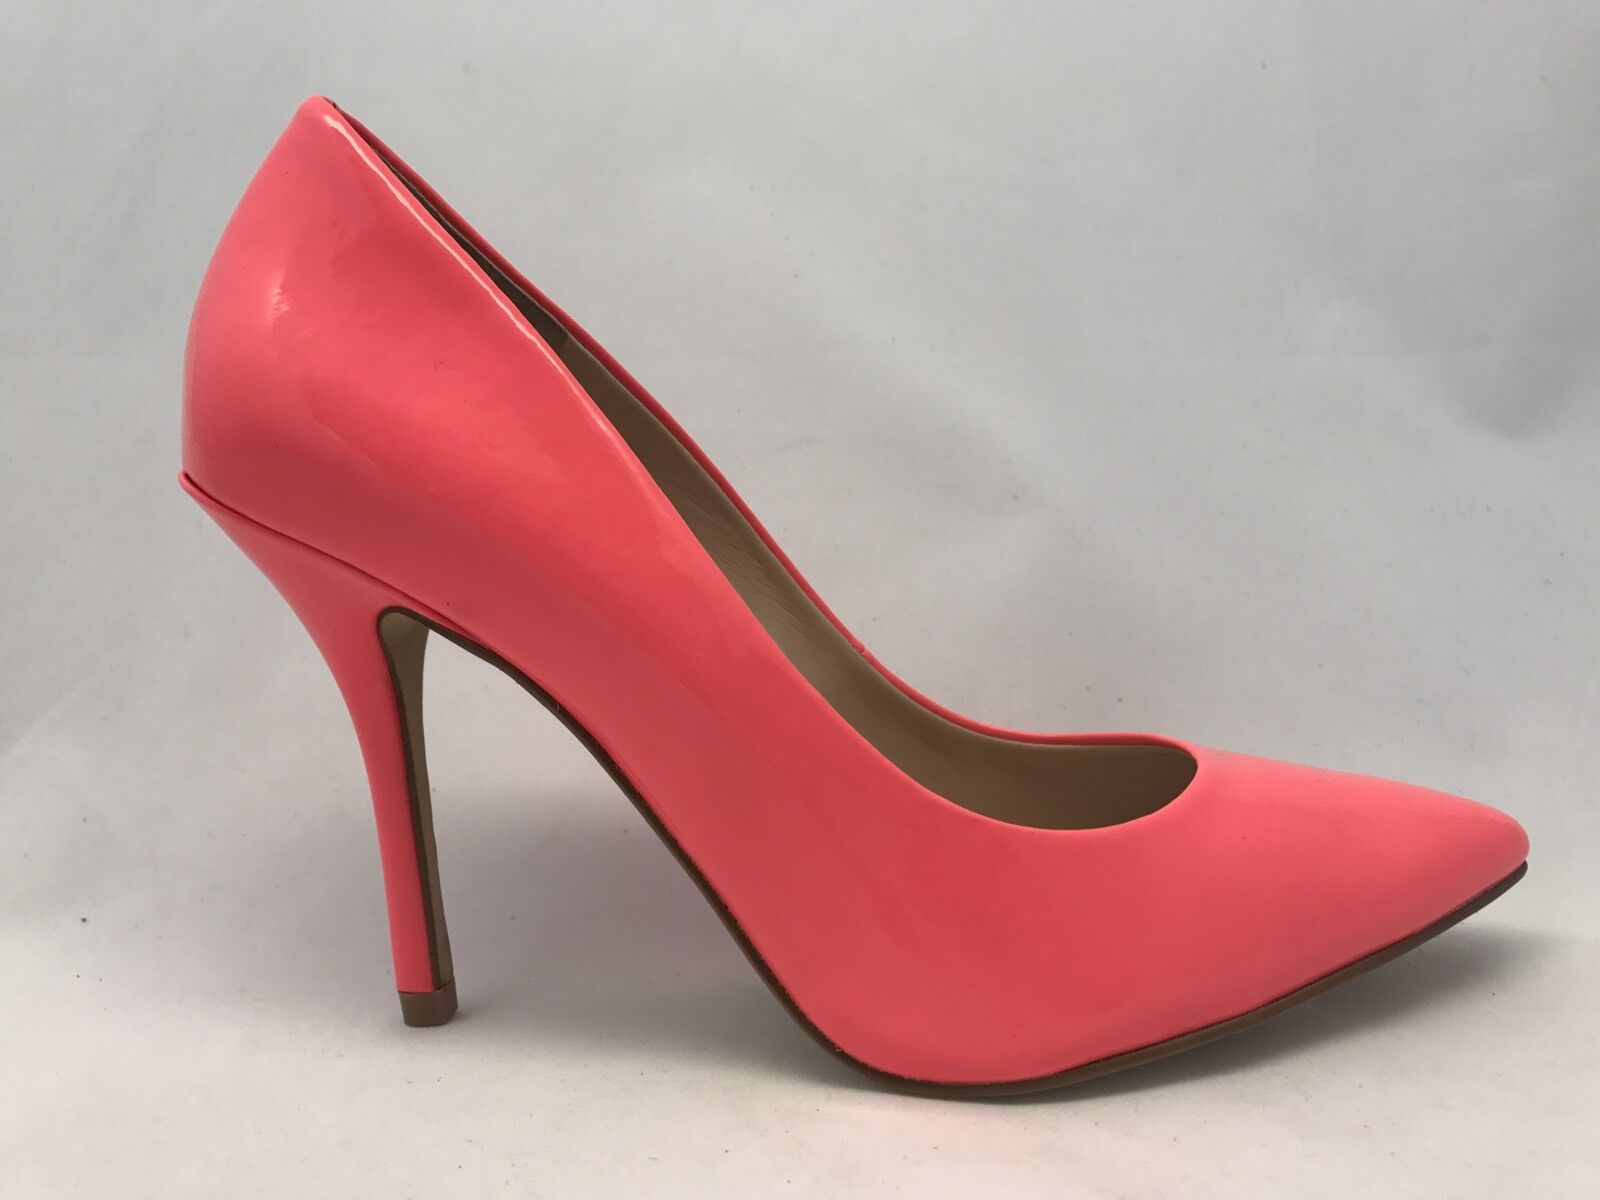 ENZO ANGIOLINI Persist Pump Heels, Dark Pink Patent Leather, MSRP $135, 7.5M